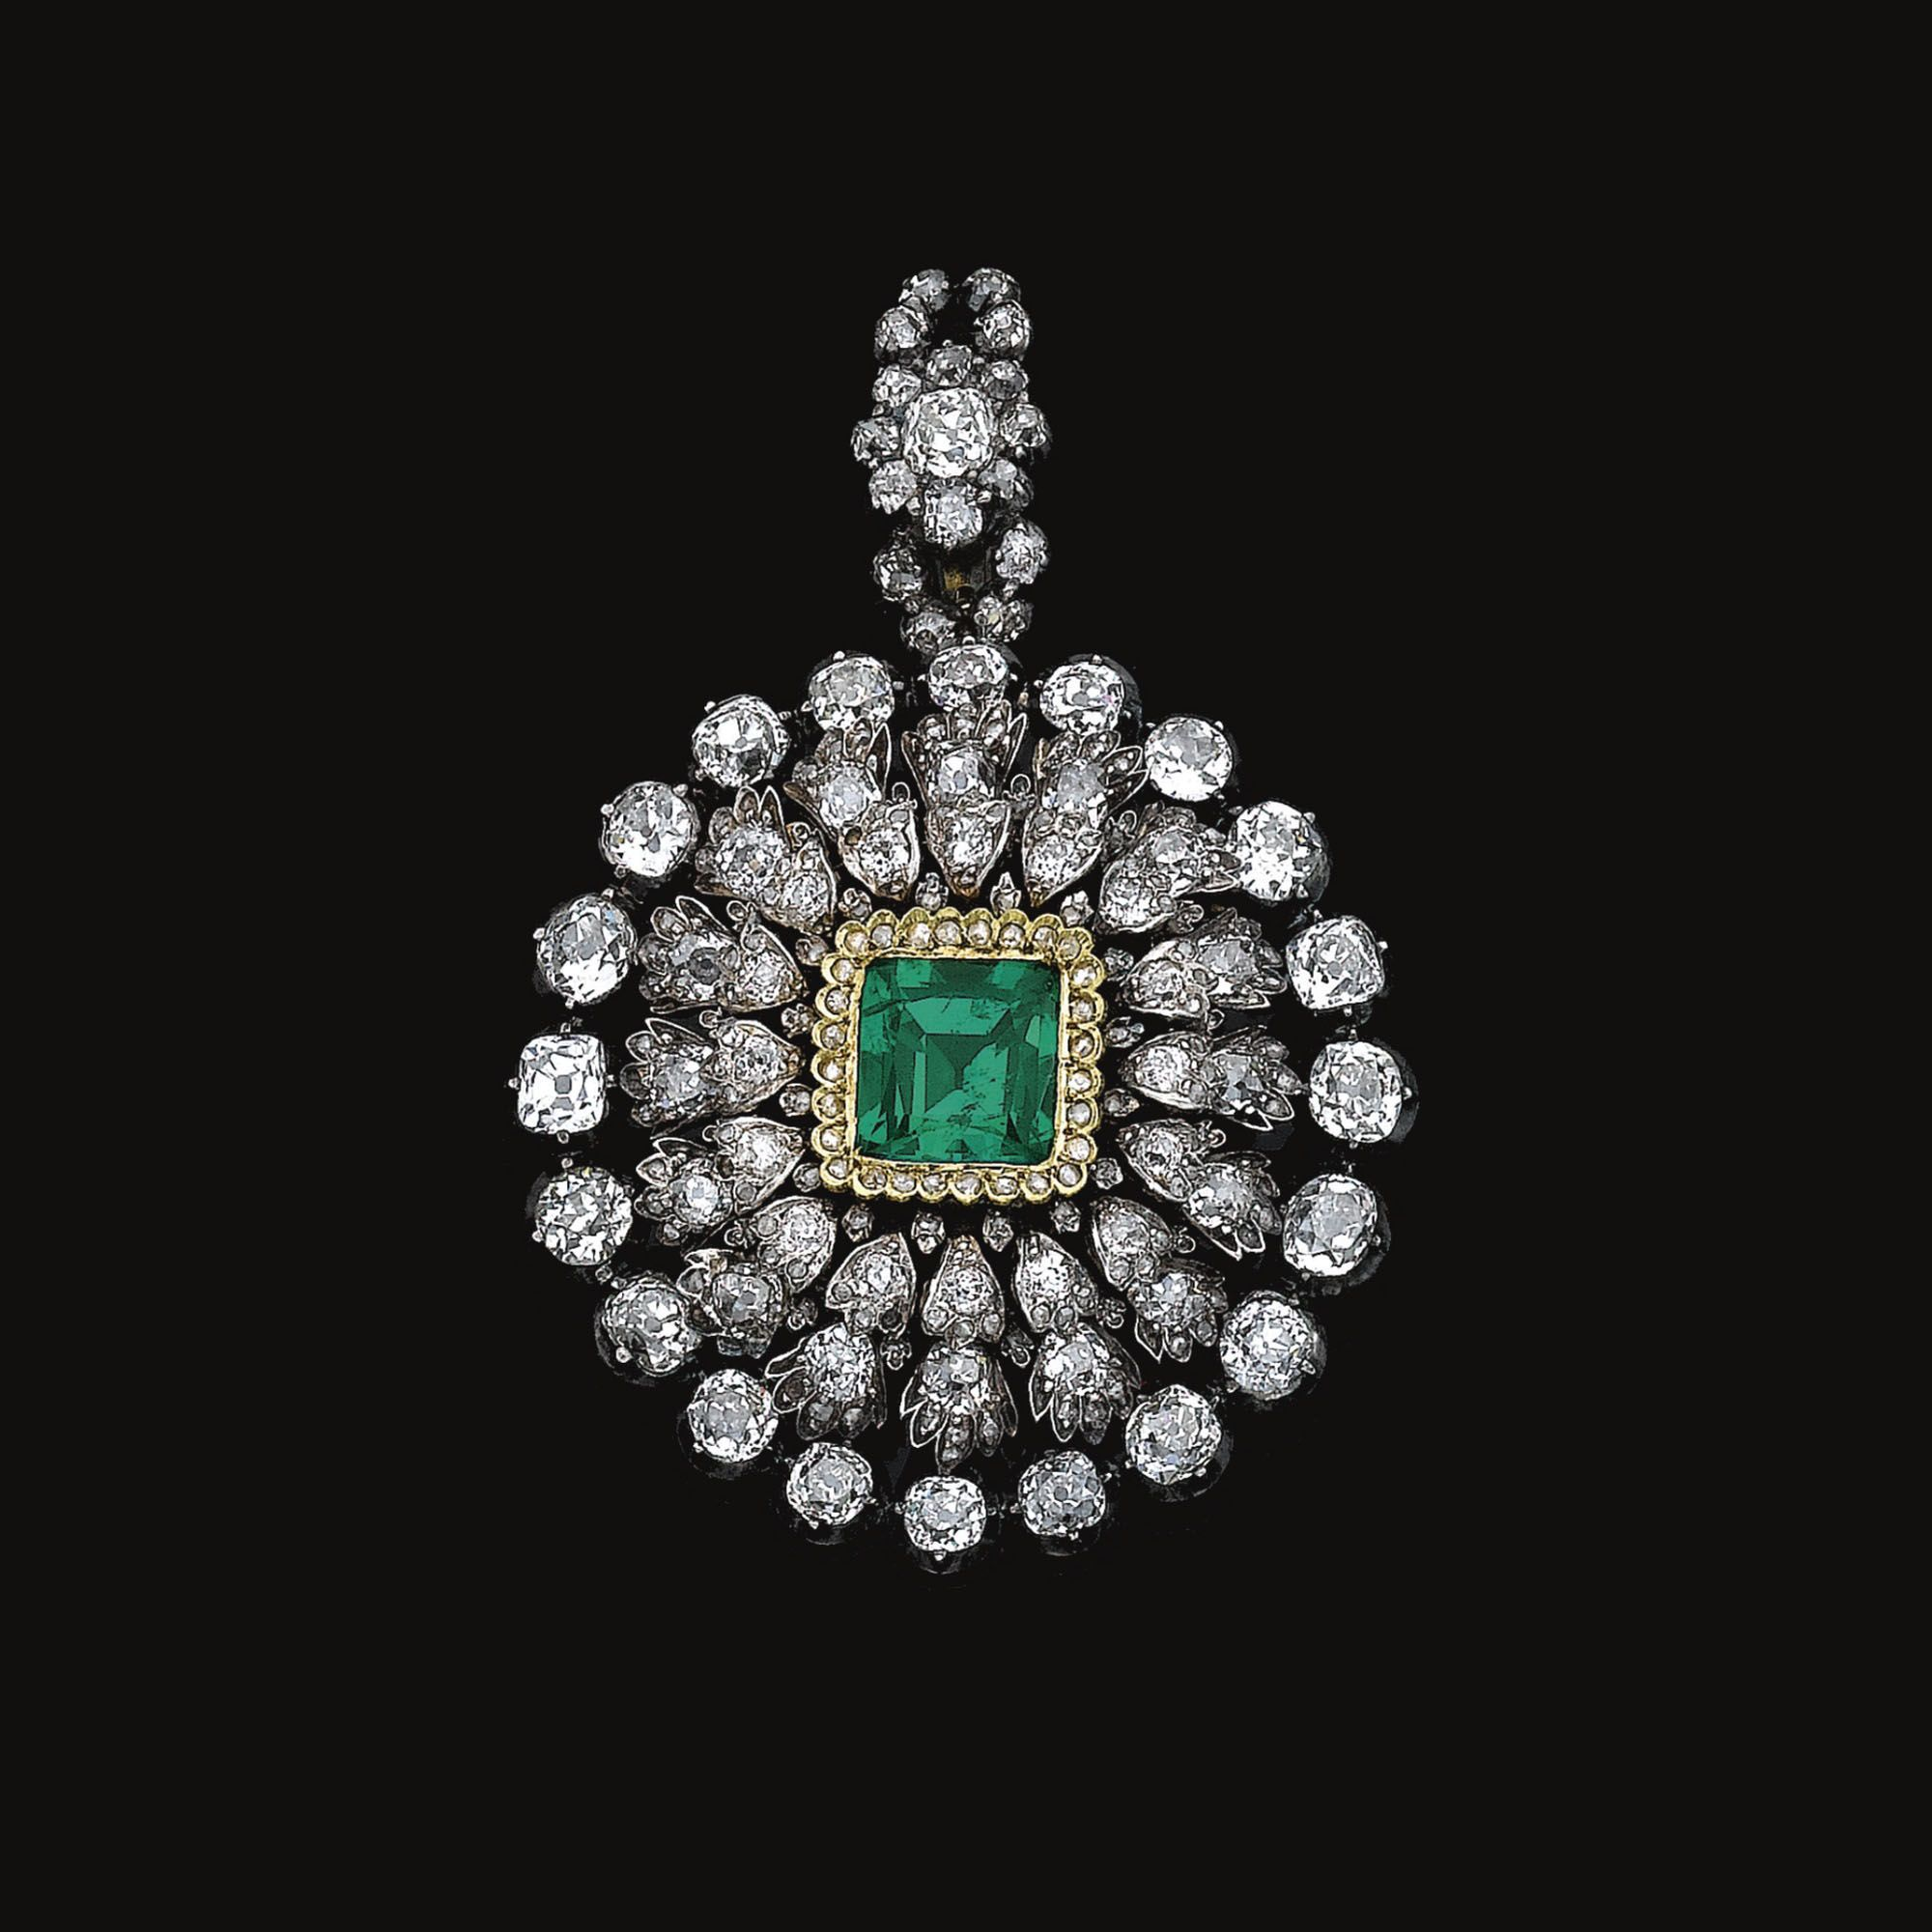 Property of a european noble family emerald and diamond pendant